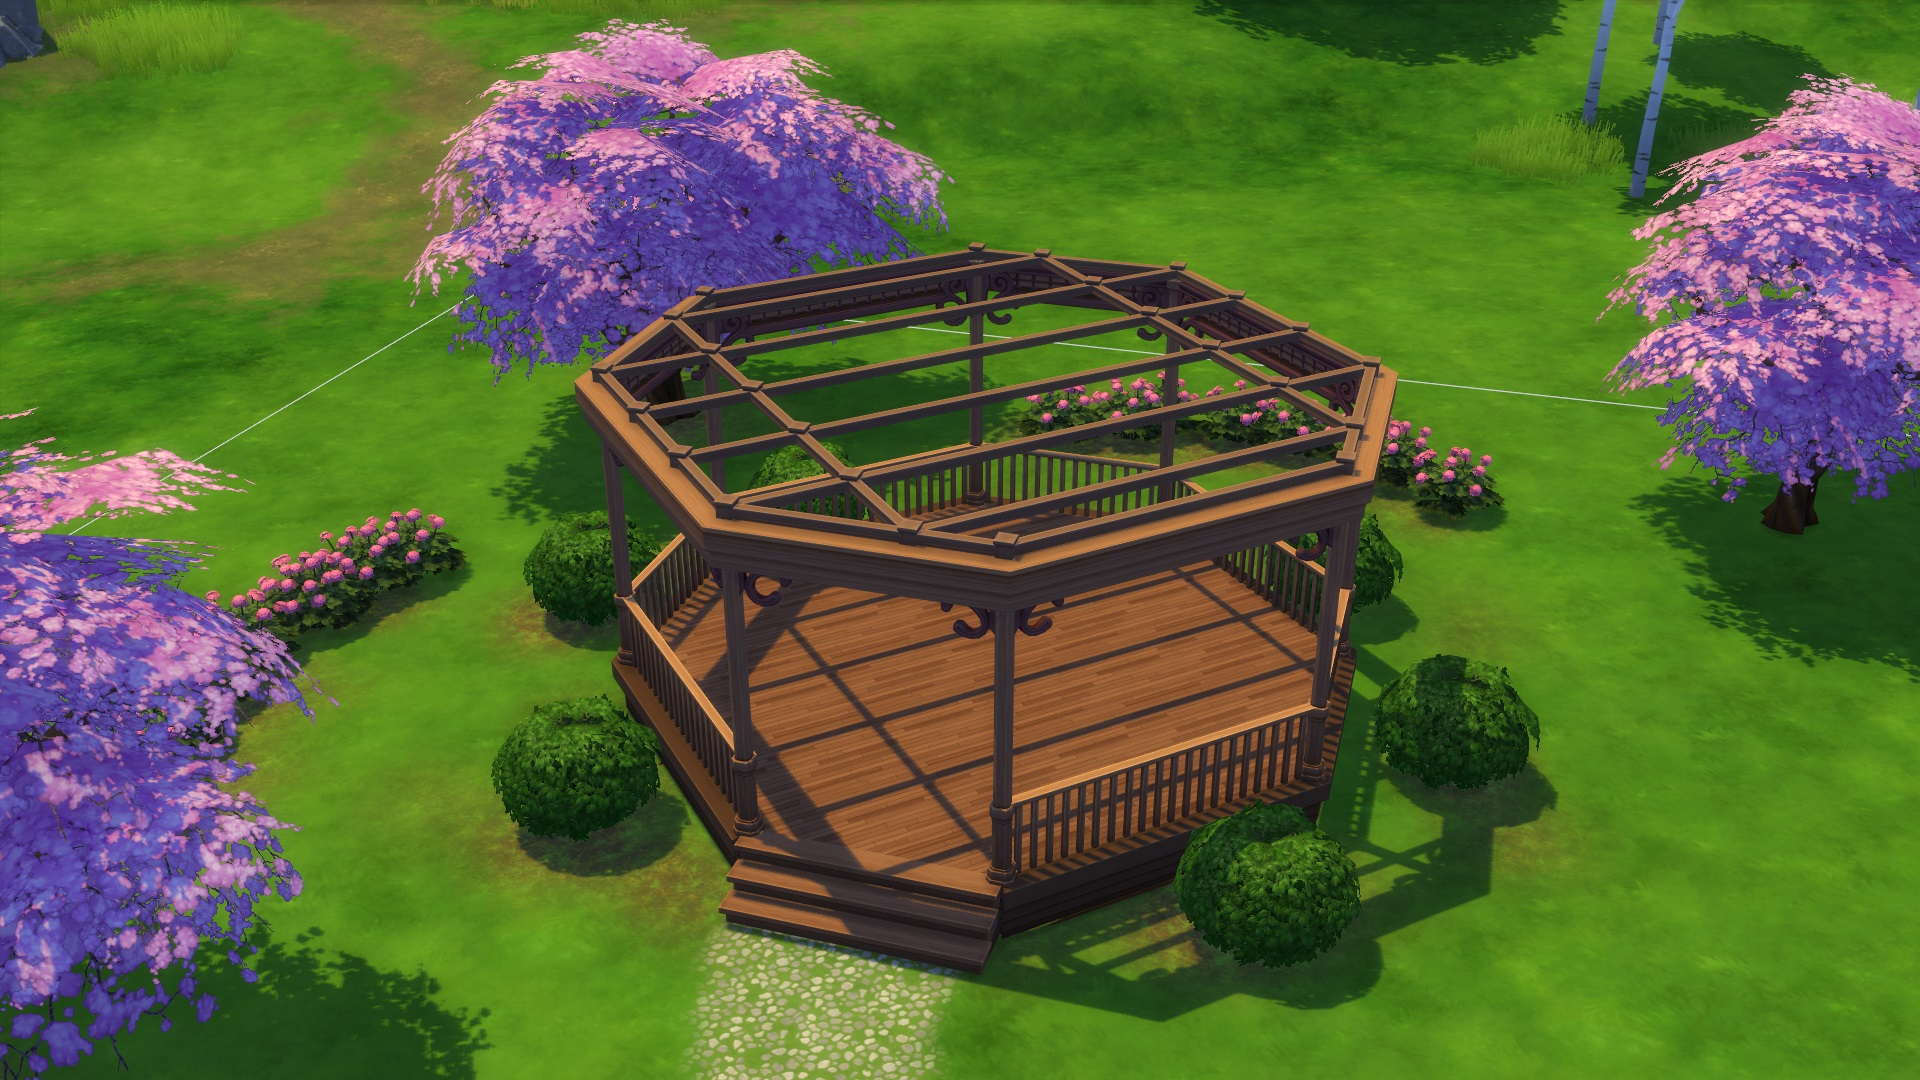 sims 4 gazebo. this was a very simple pattern and you can definitely play around with your own patterns as well to find something think is nice sims 4 gazebo m